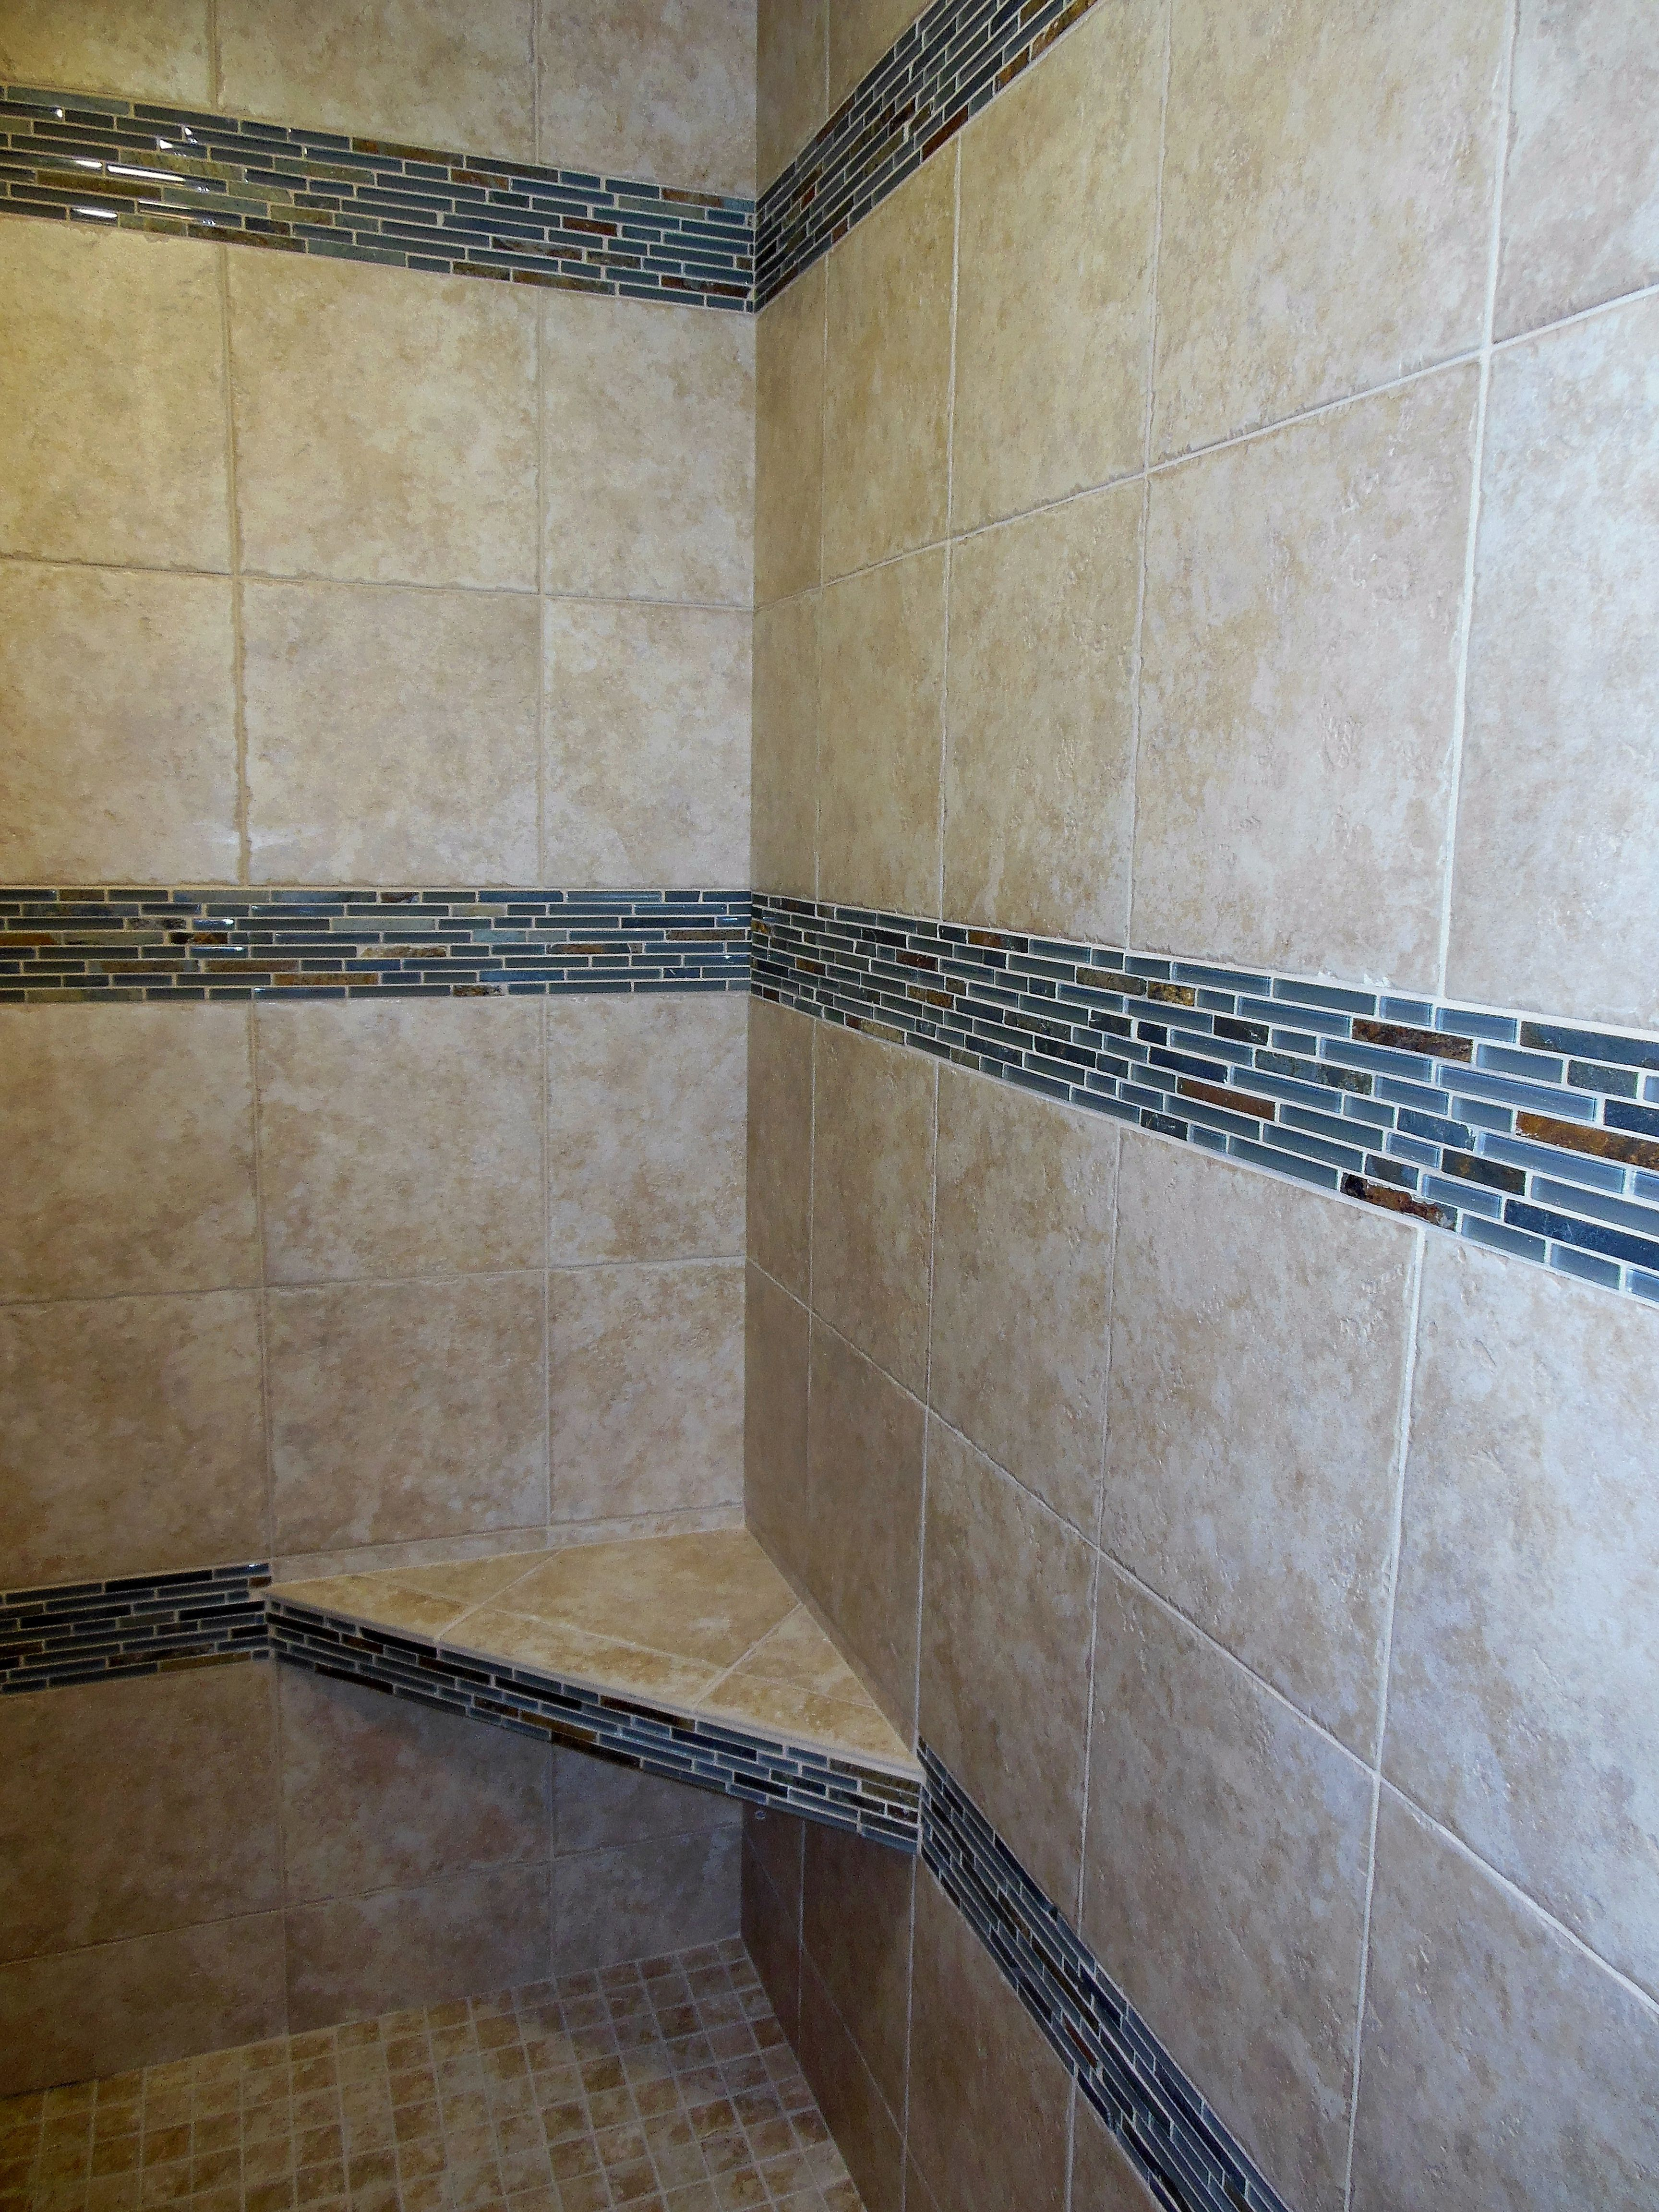 Tile glass ceramic tile shower by english int inc portland tile glass ceramic tile shower by english int portland or dailygadgetfo Image collections